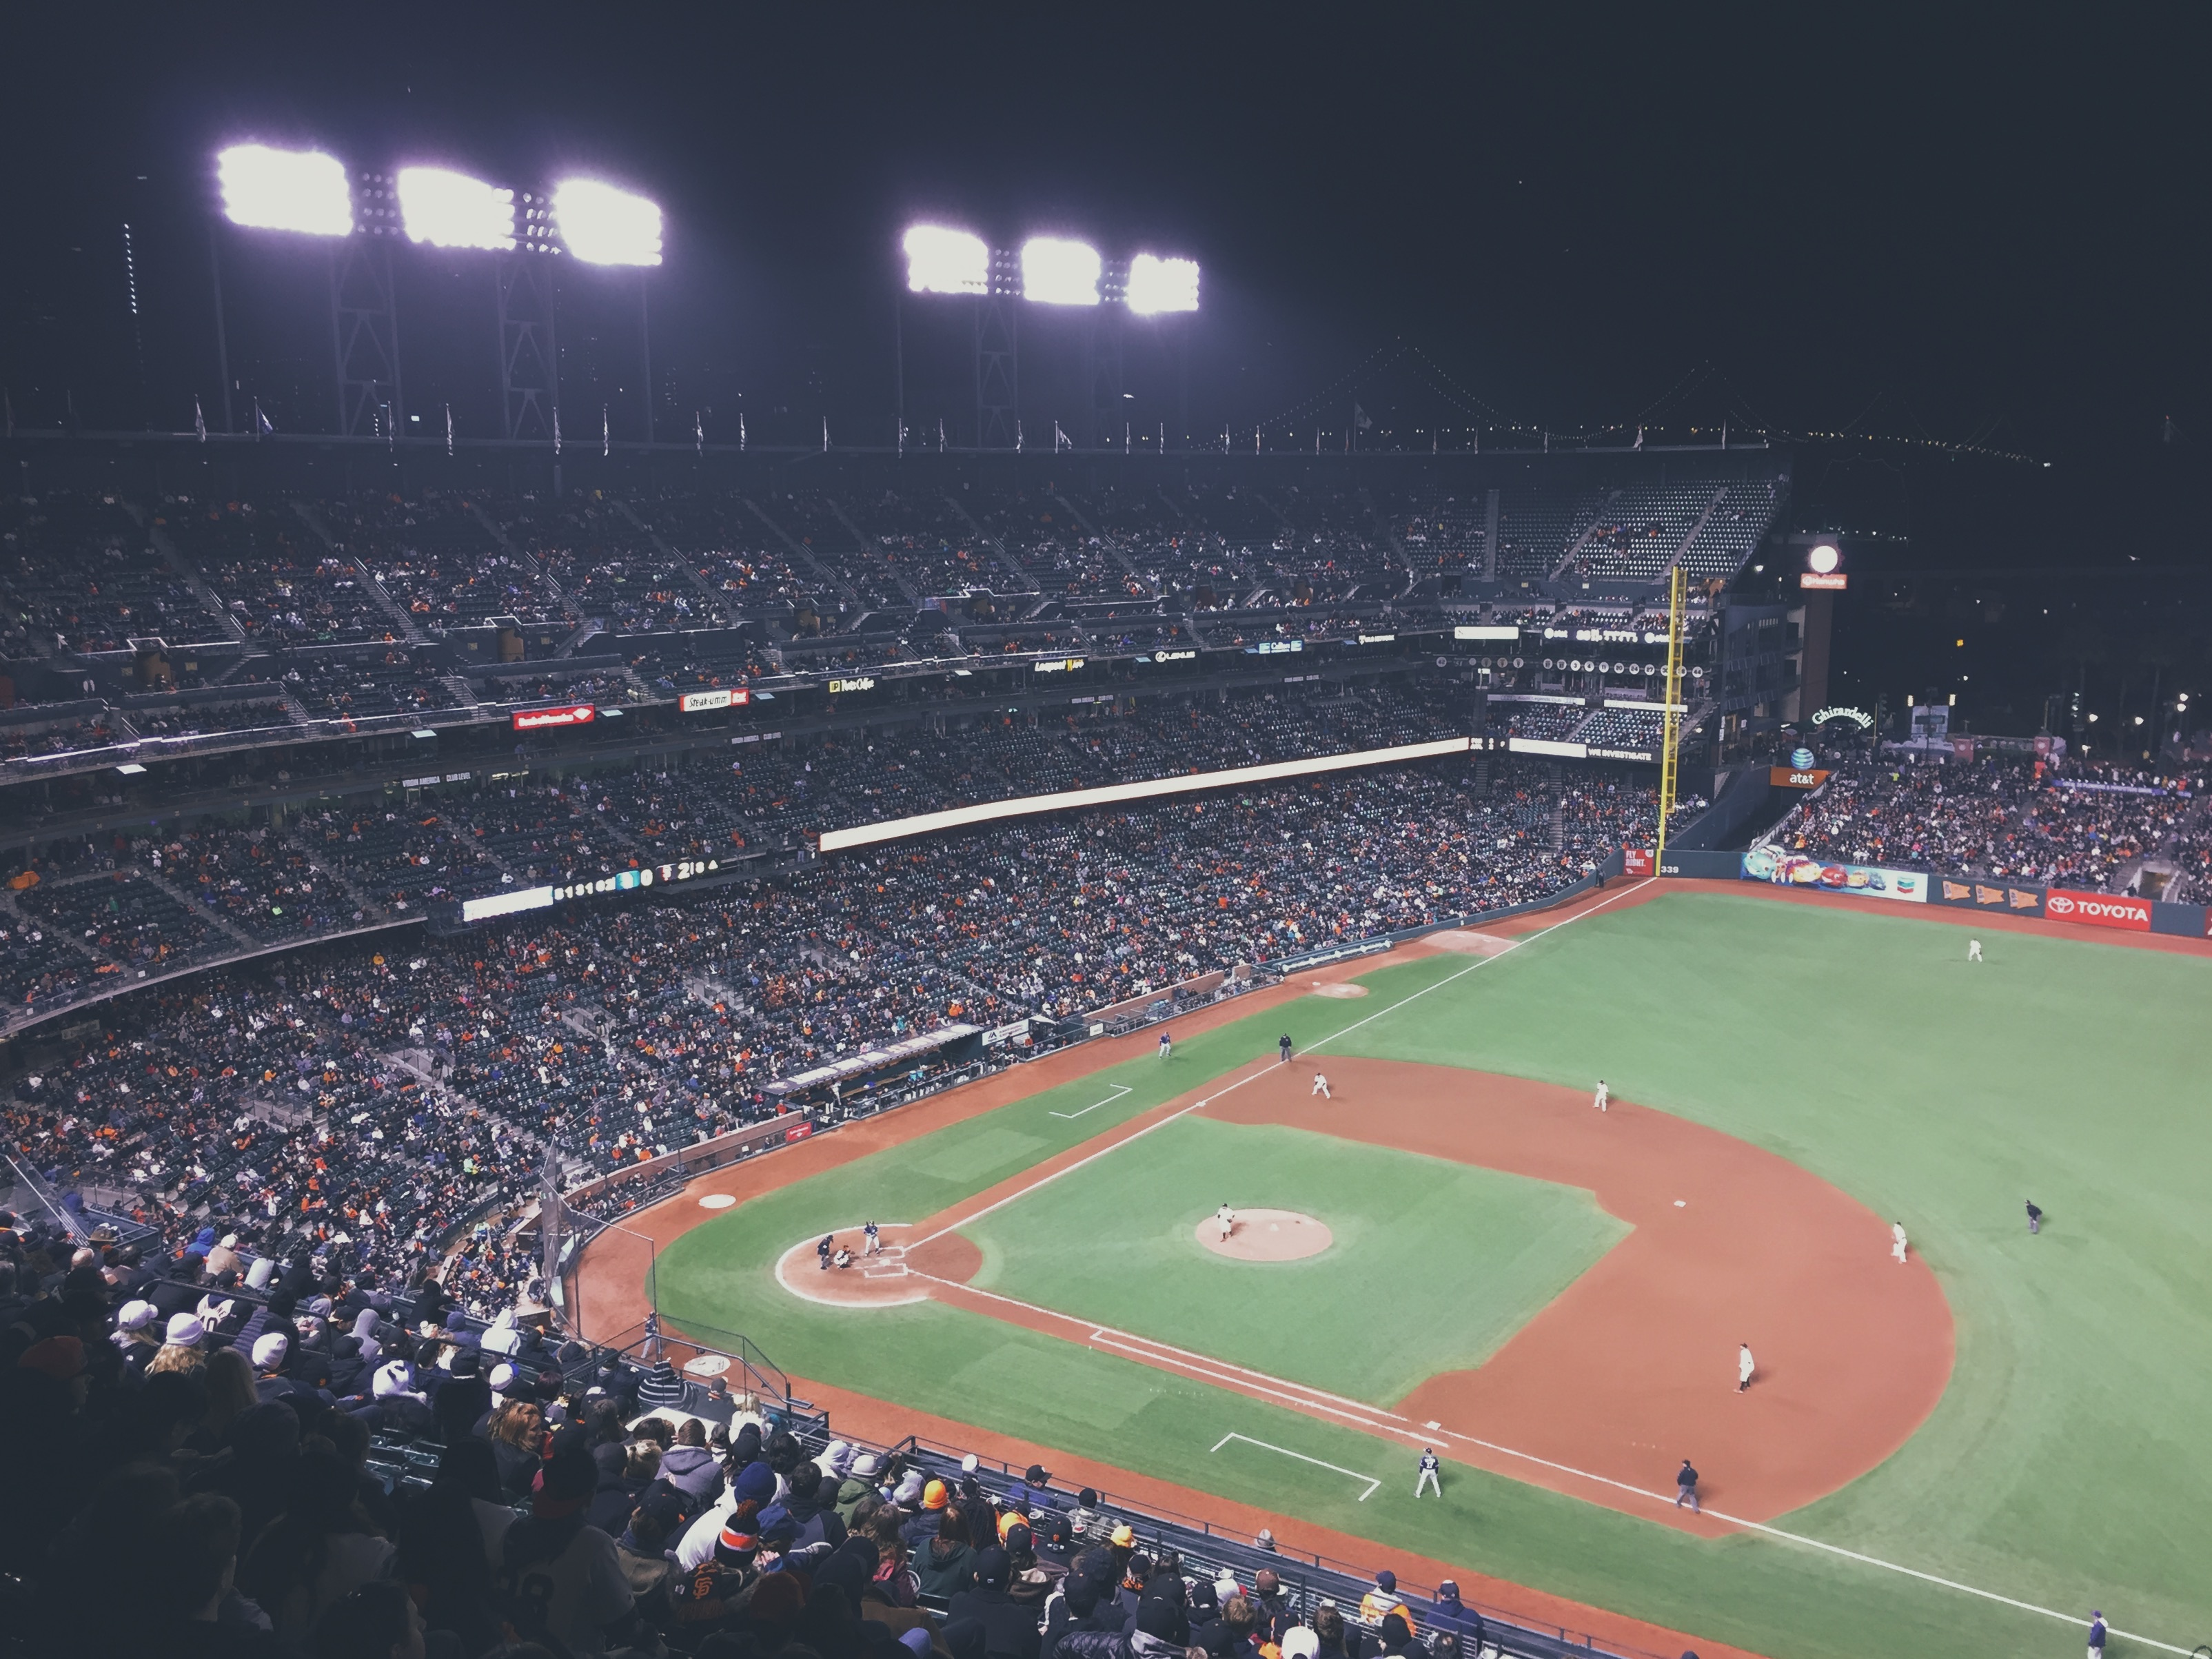 Phoenix has all of the major sporting leagues and hosts plenty of exciting games.